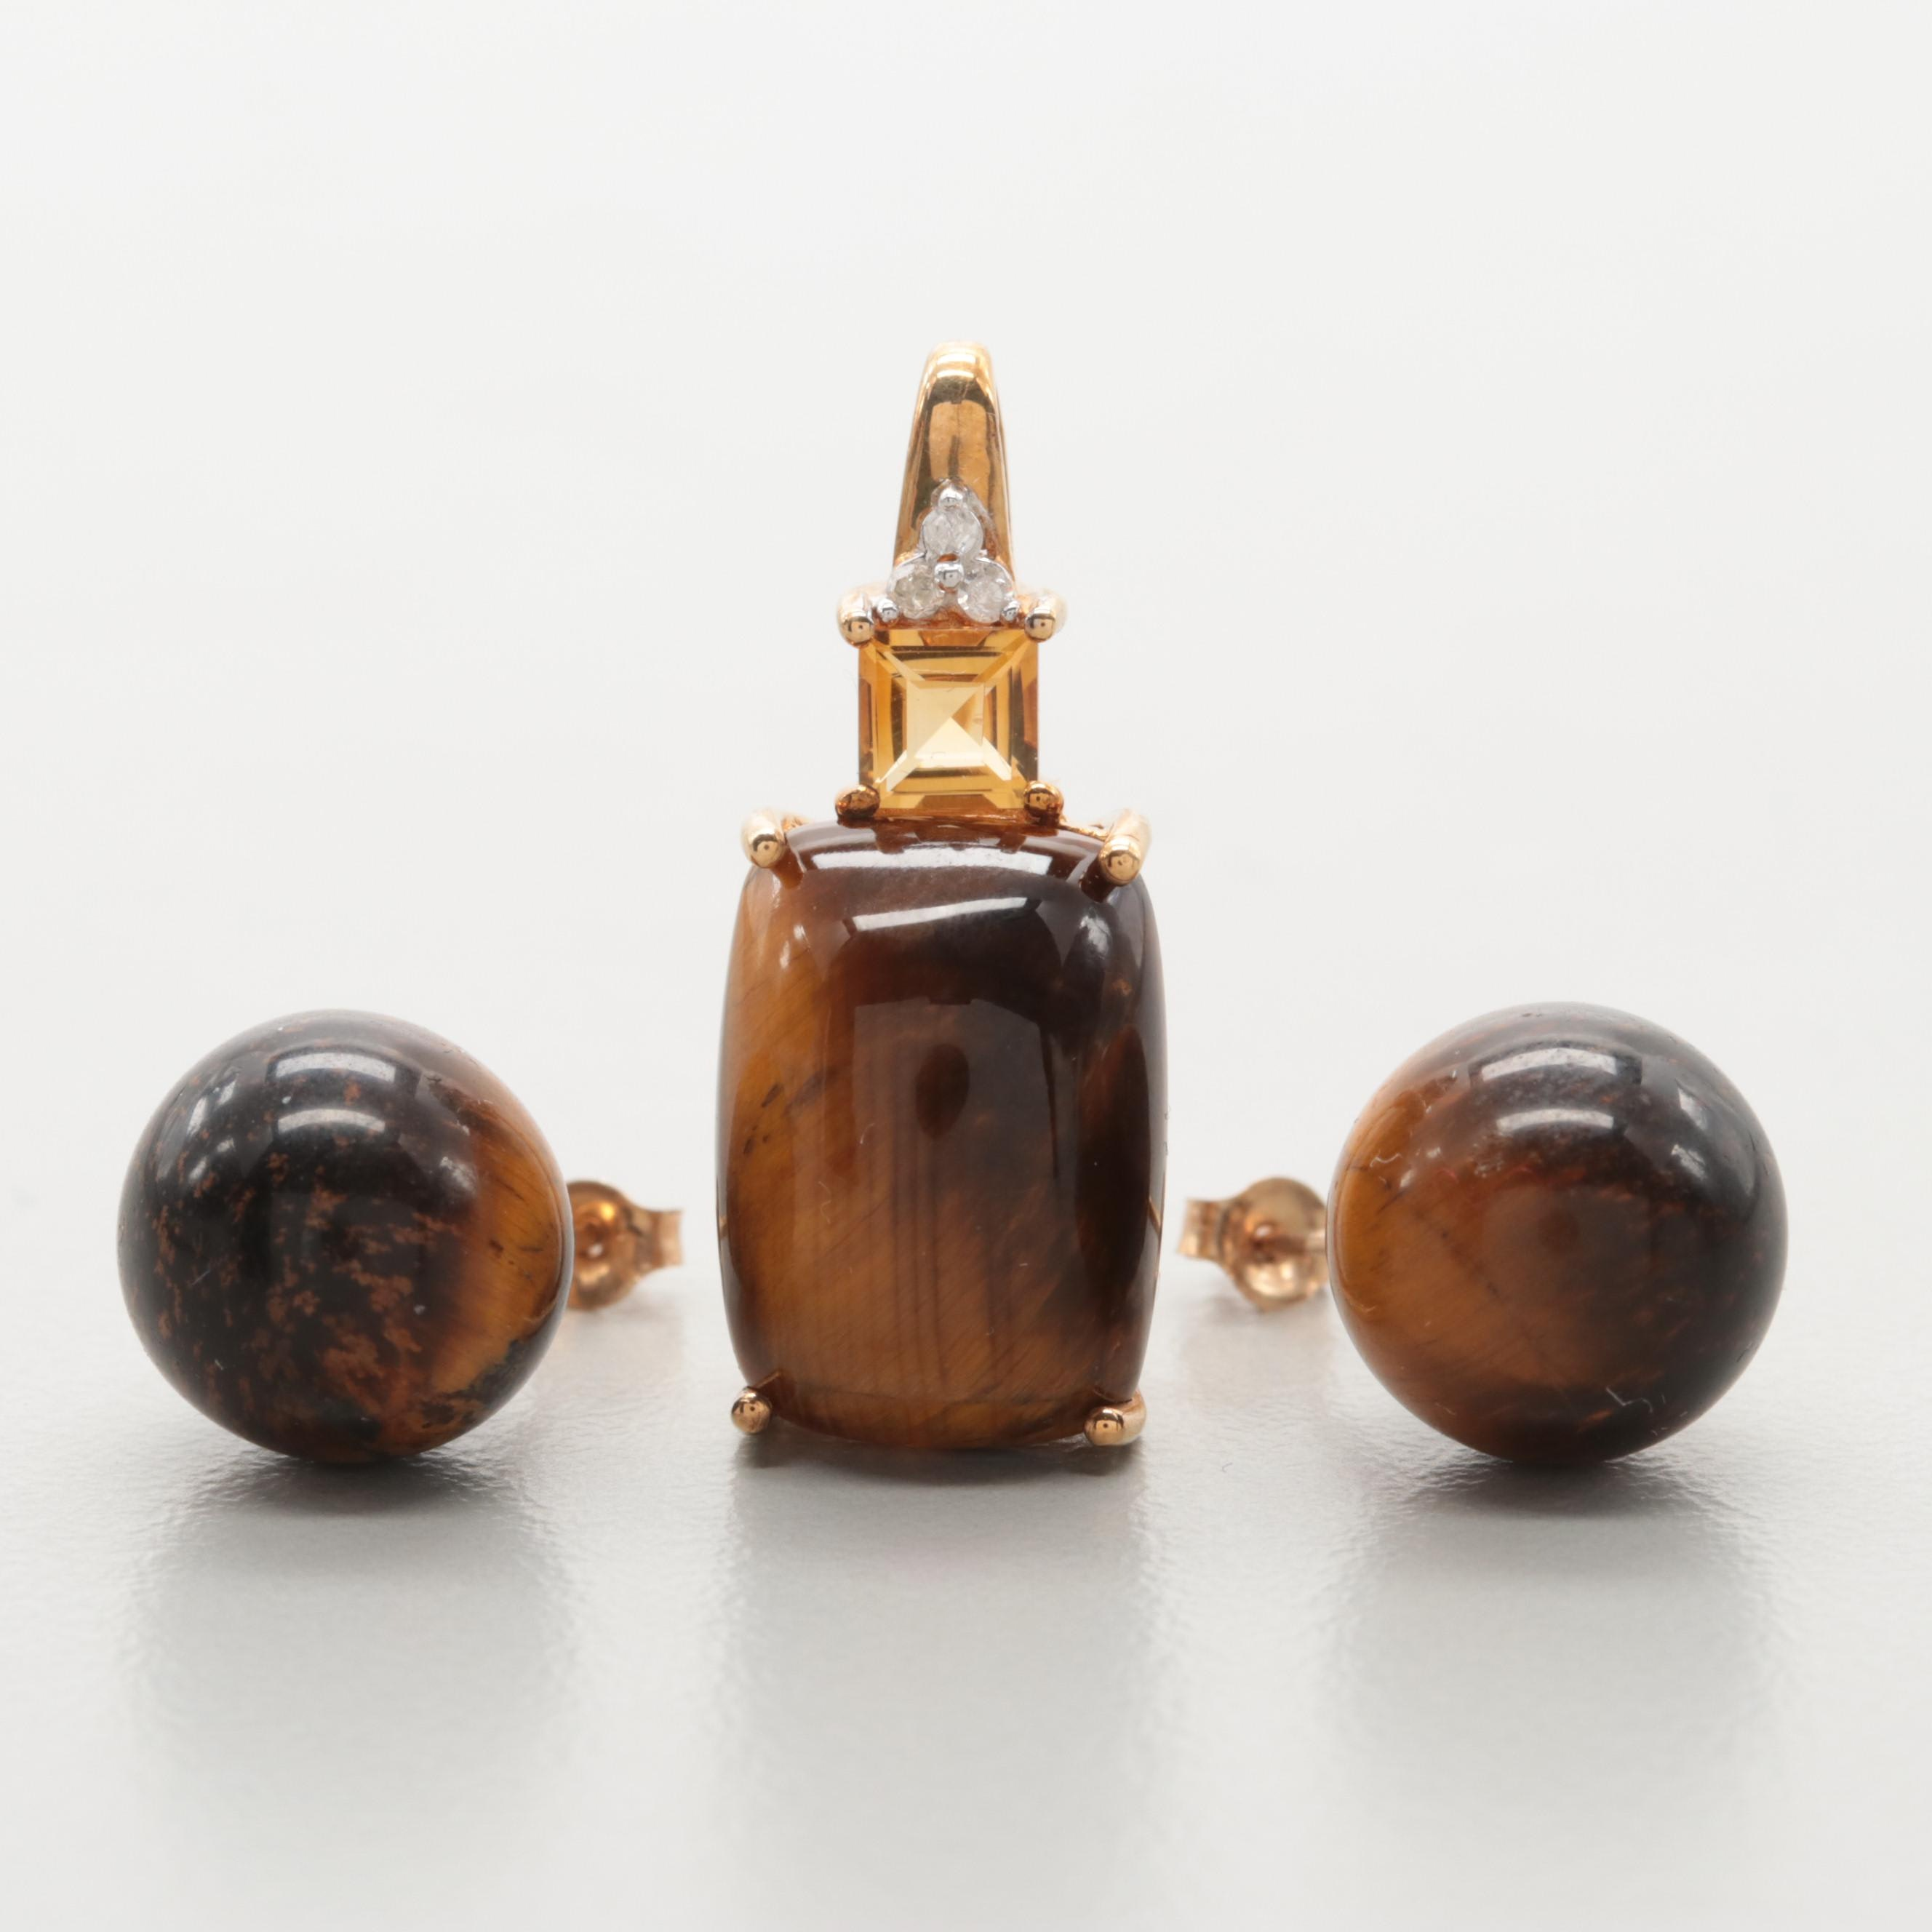 10K Yellow Gold Tiger's Eye, Citrine, and Diamond Pendant and Stud Earrings